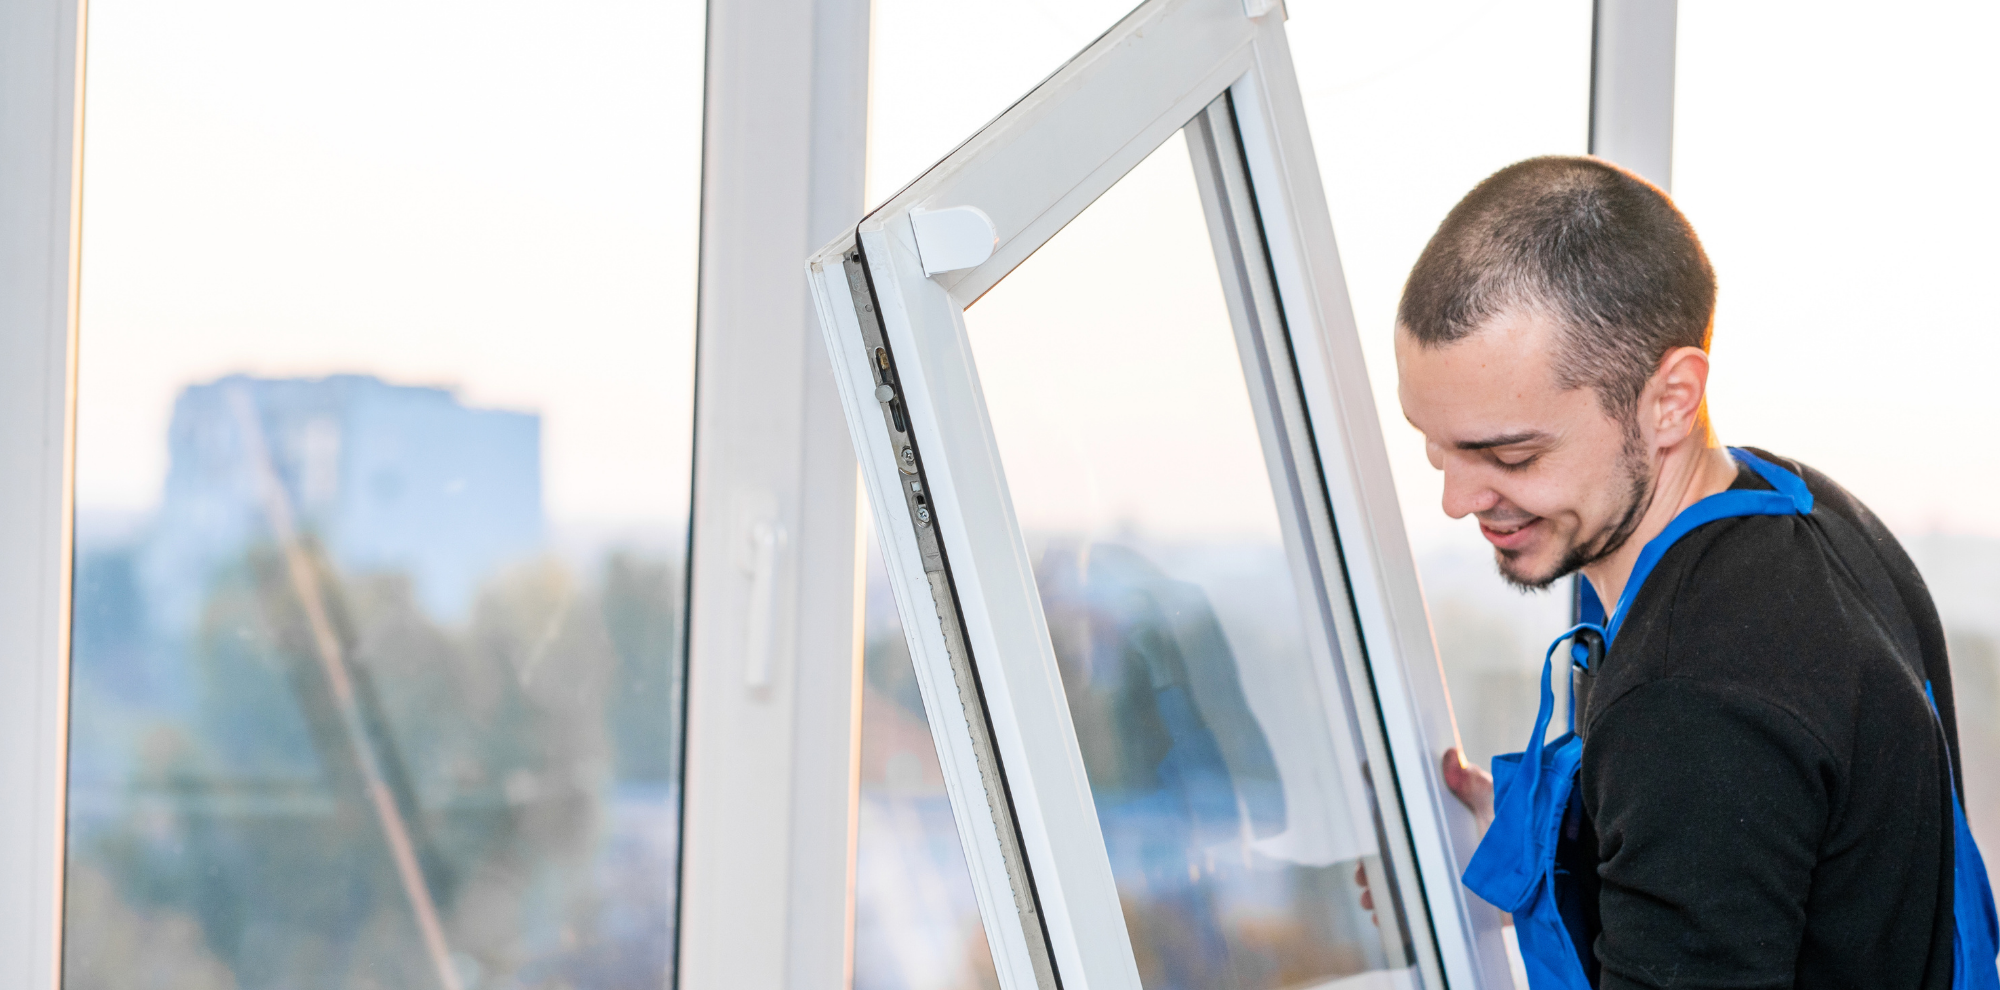 Category Preview - <h4>NVQ LEVEL 2<br><strong>DIPLOMA IN FENESTRATION INSTALLATION<br></strong>£750 + FREE CSCS CARD</h4> <h4><strong></strong></h4>